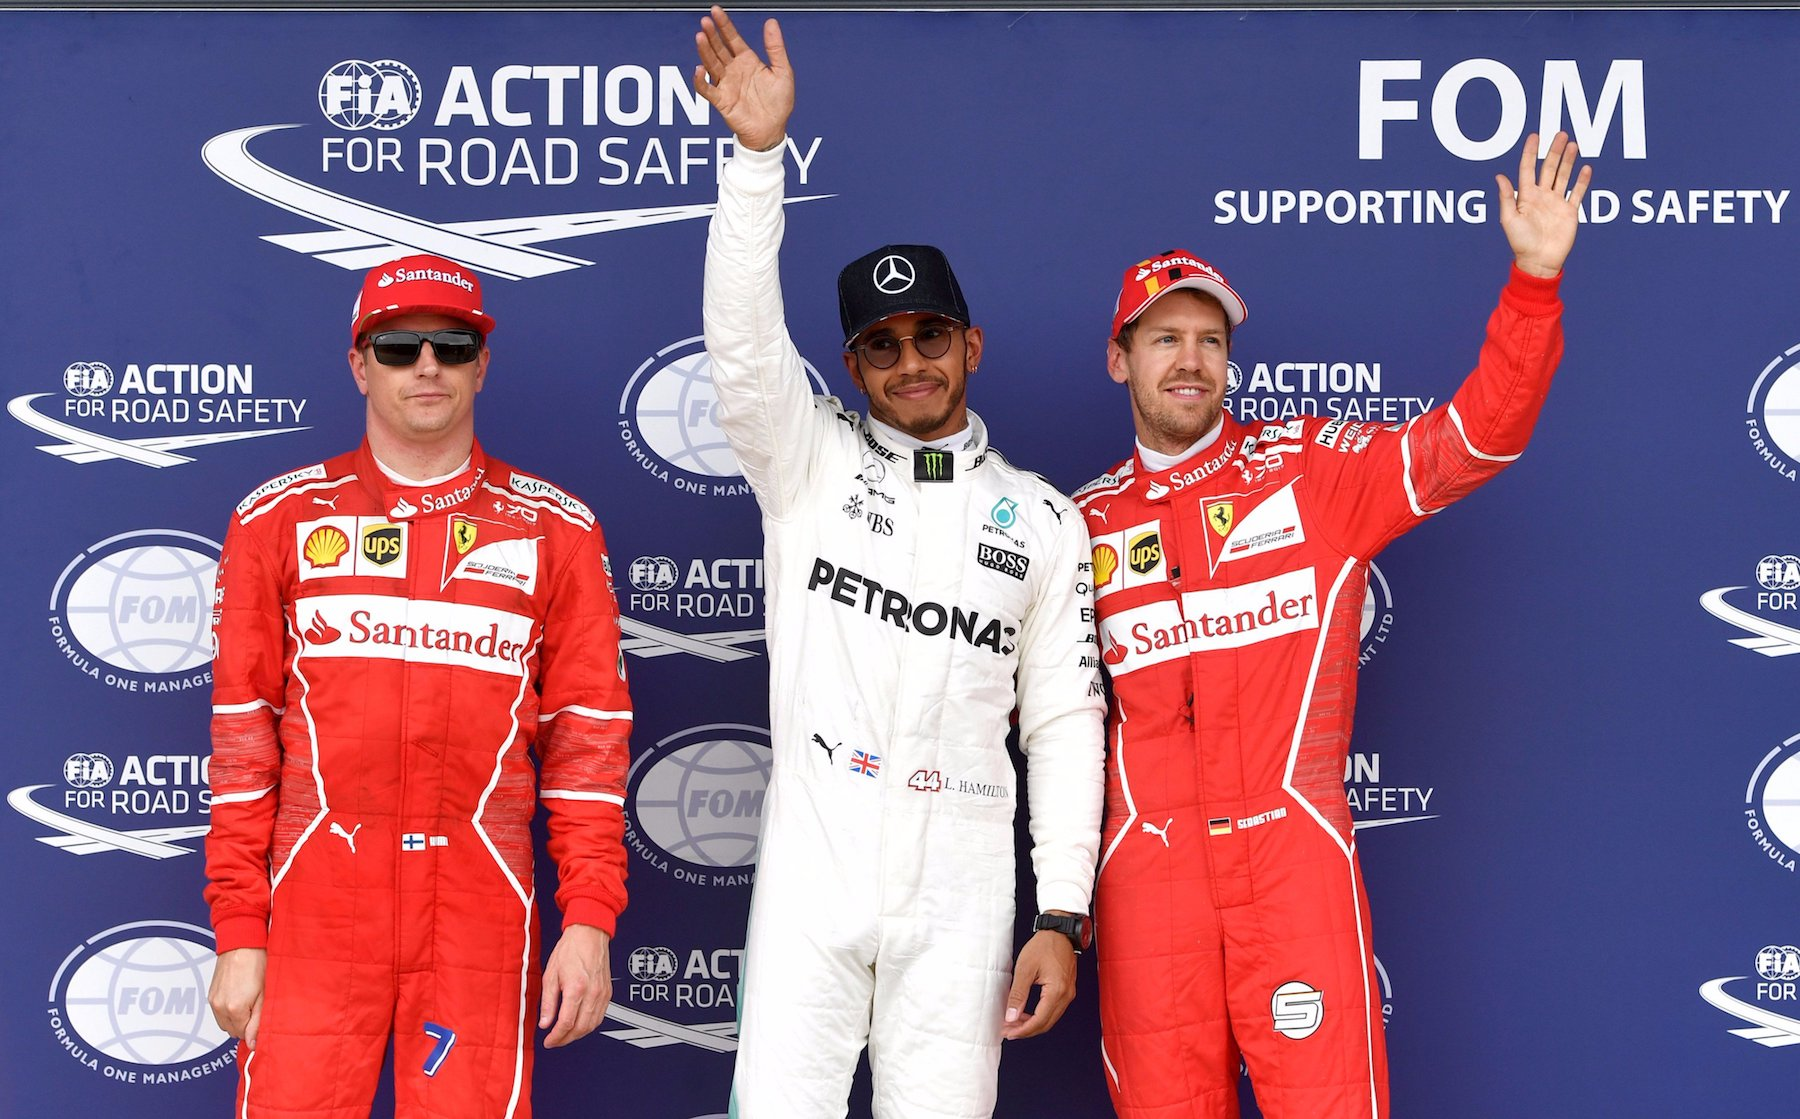 2017 Pole position top 3 copy.jpg